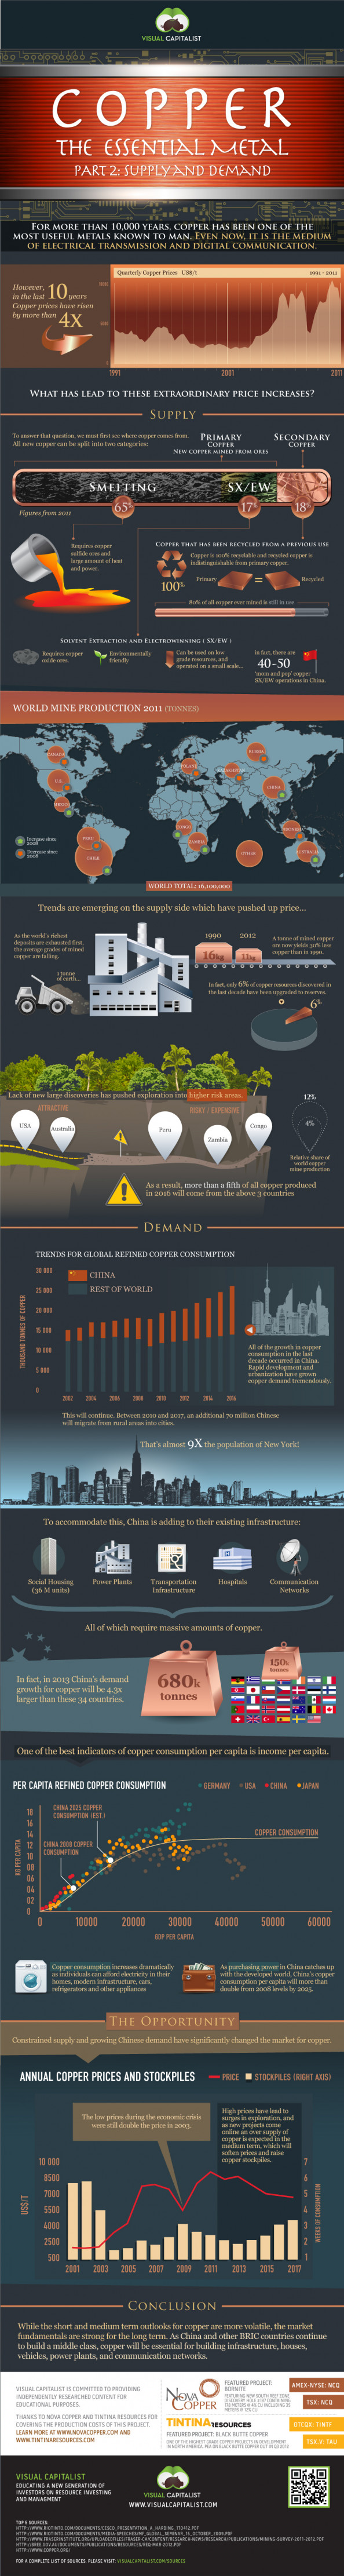 Copper: The Essential Metal (Part II) - Supply and Demand Infographic